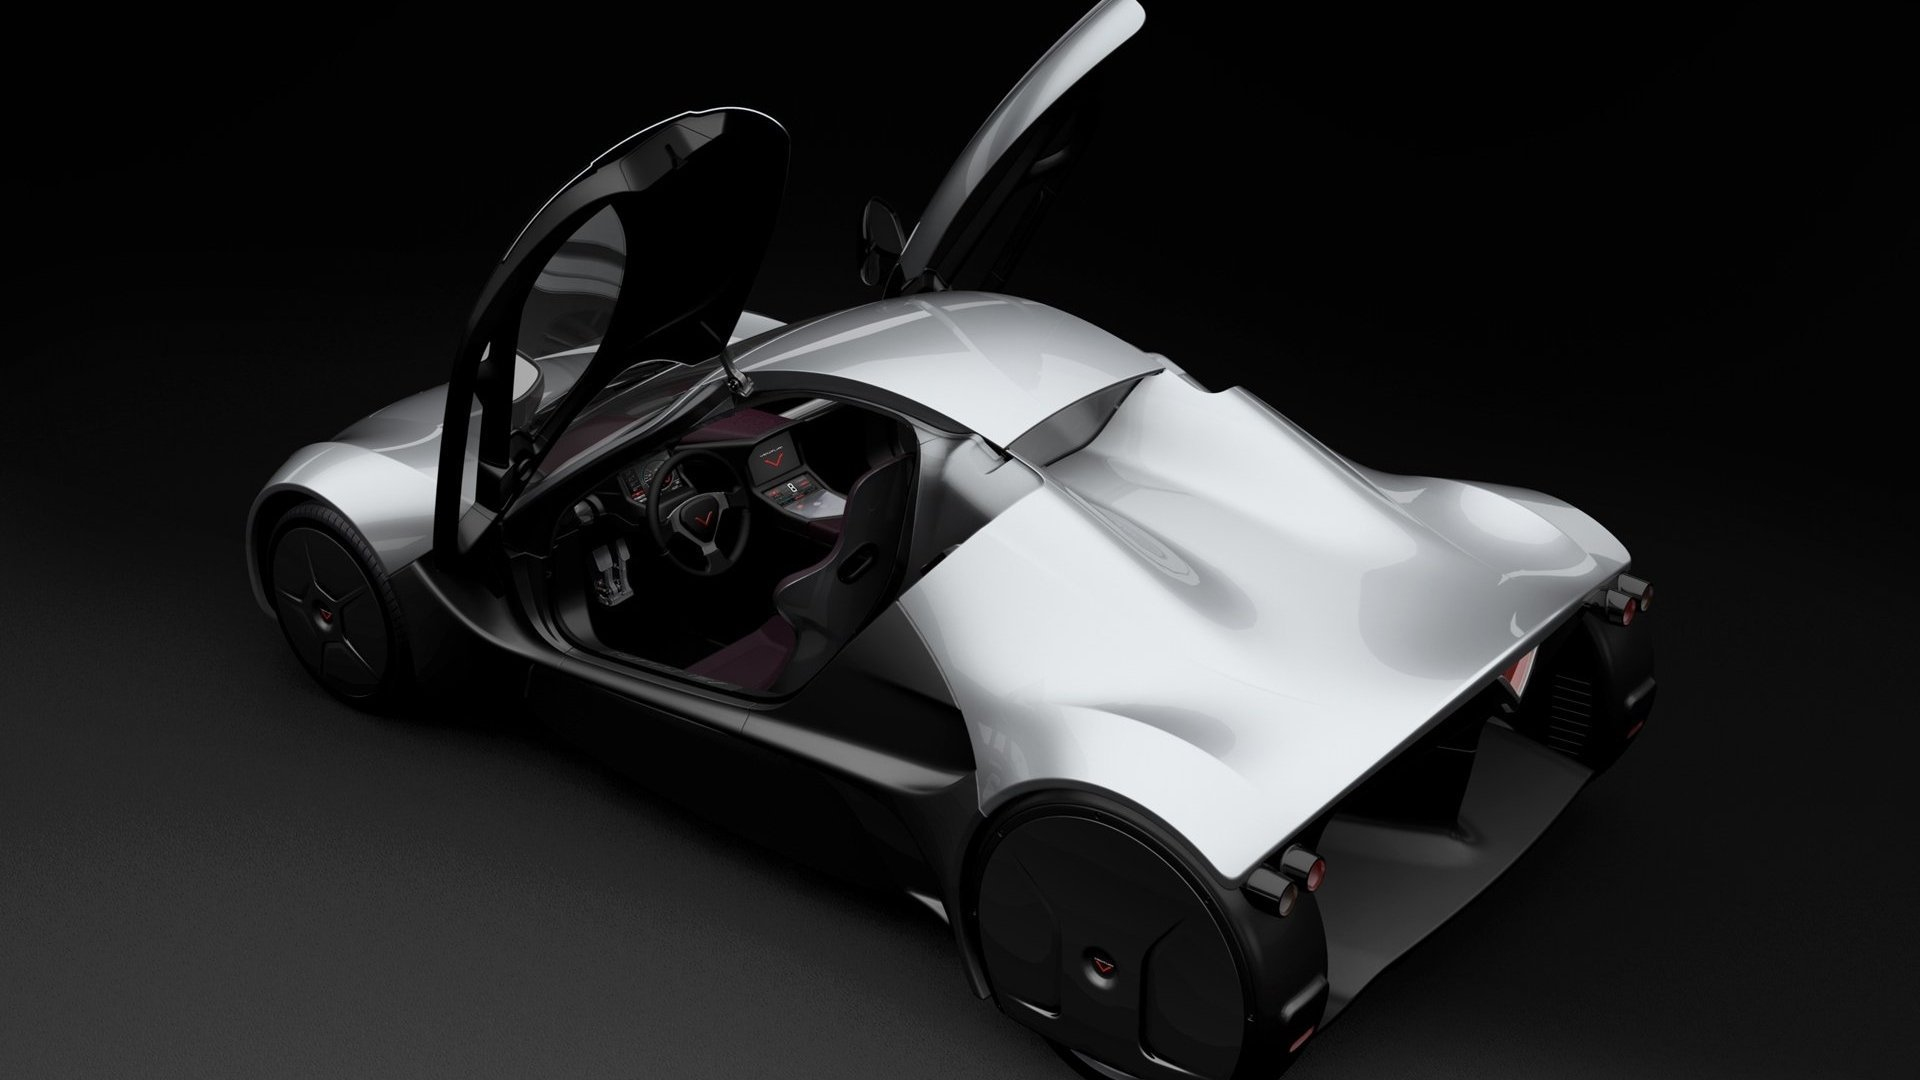 New Venturi Volage Hd Wallpaper Background Image 1920X1080 On This Month